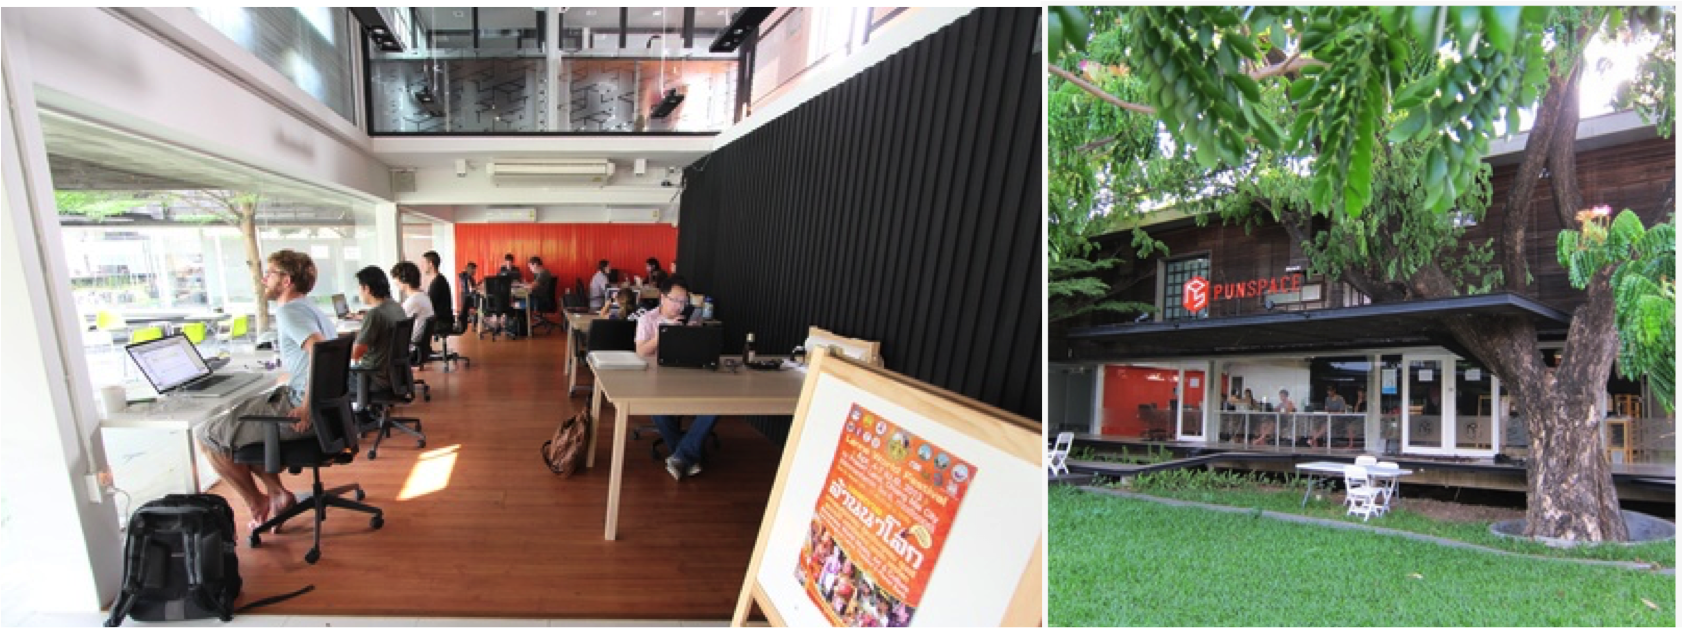 Punspace - coworking space in Chiang Mai.